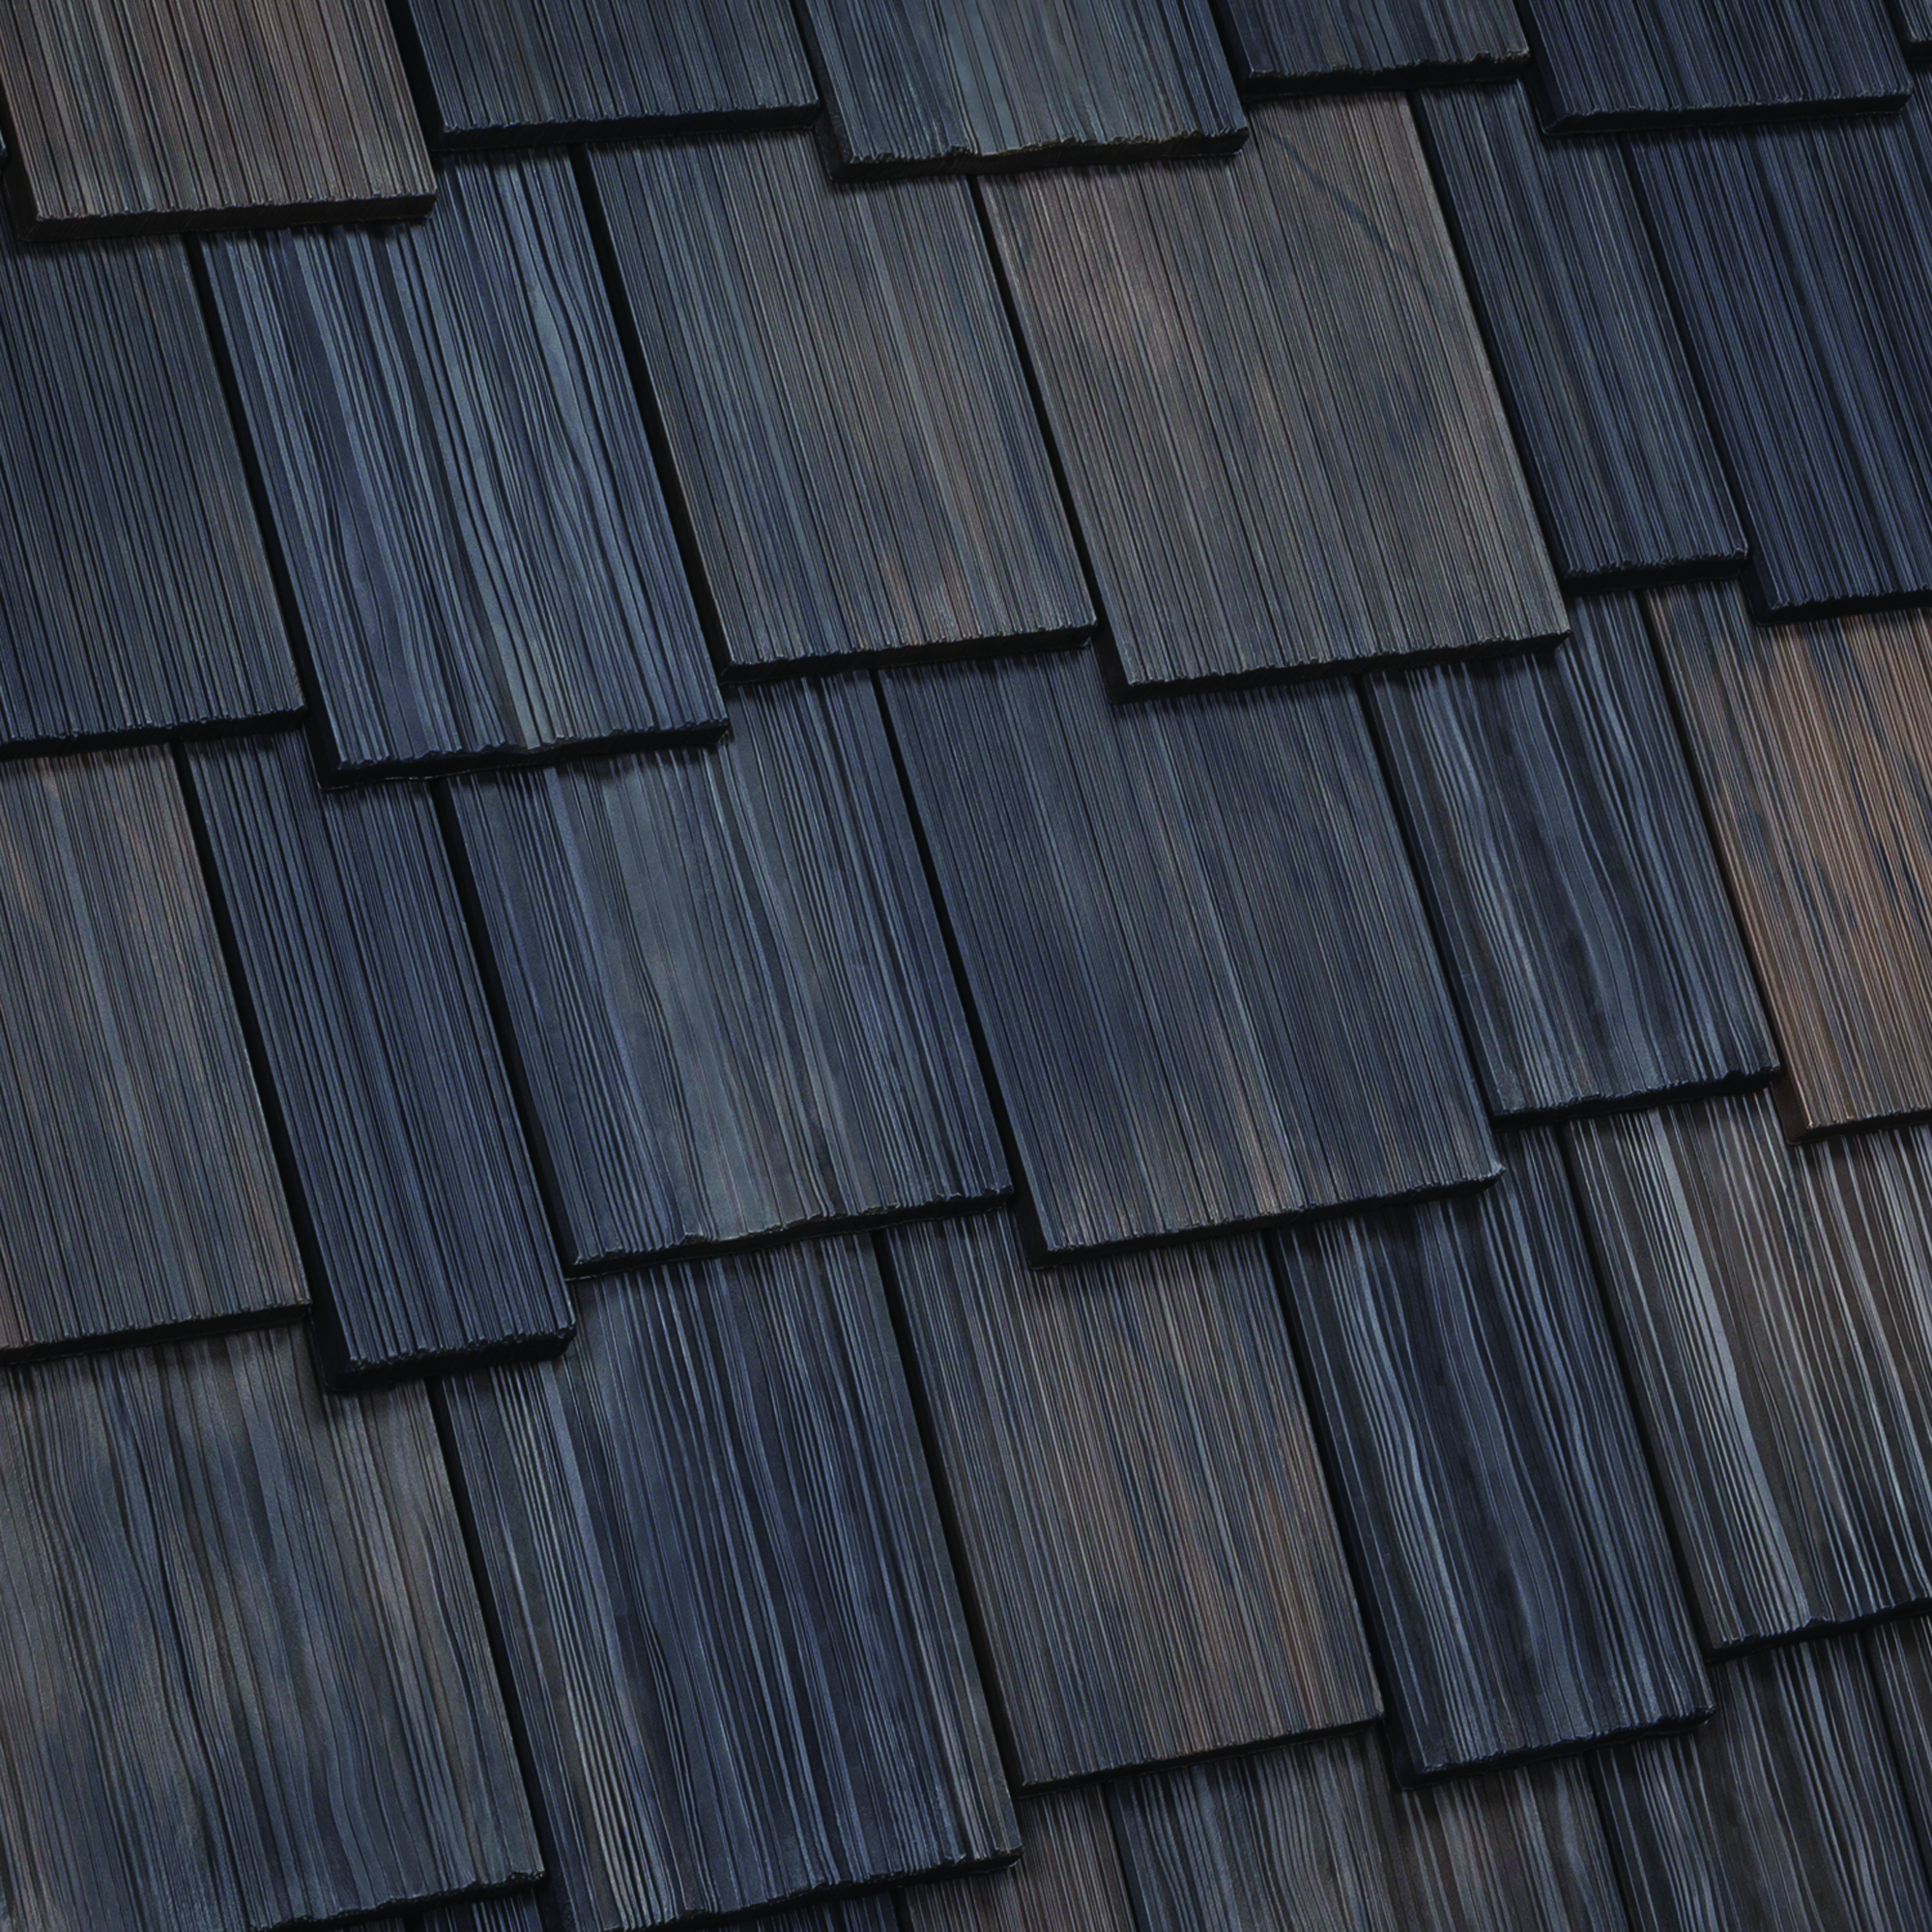 Composite Shingles With An Aged Shake Look Jlc Online